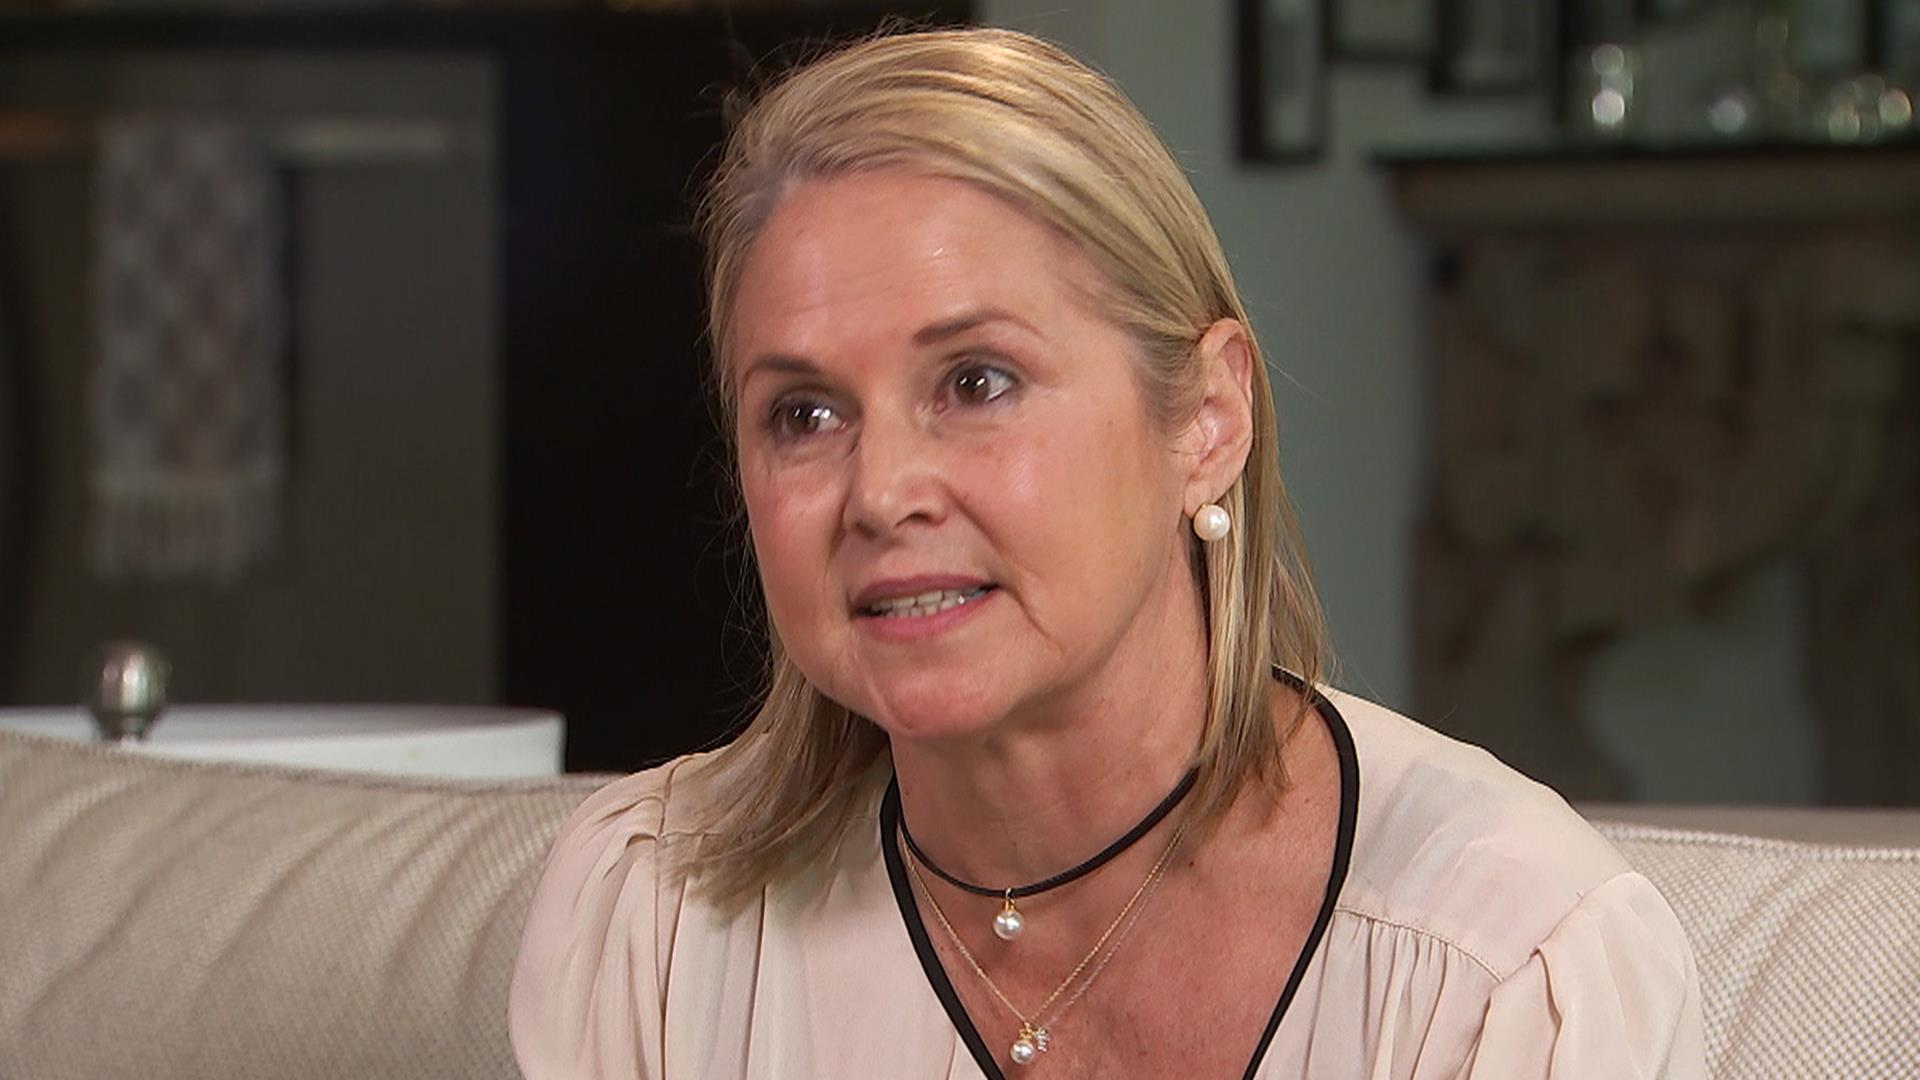 George Huguely S Mother Speaks Out For First Time On Death Of Yeardley Love